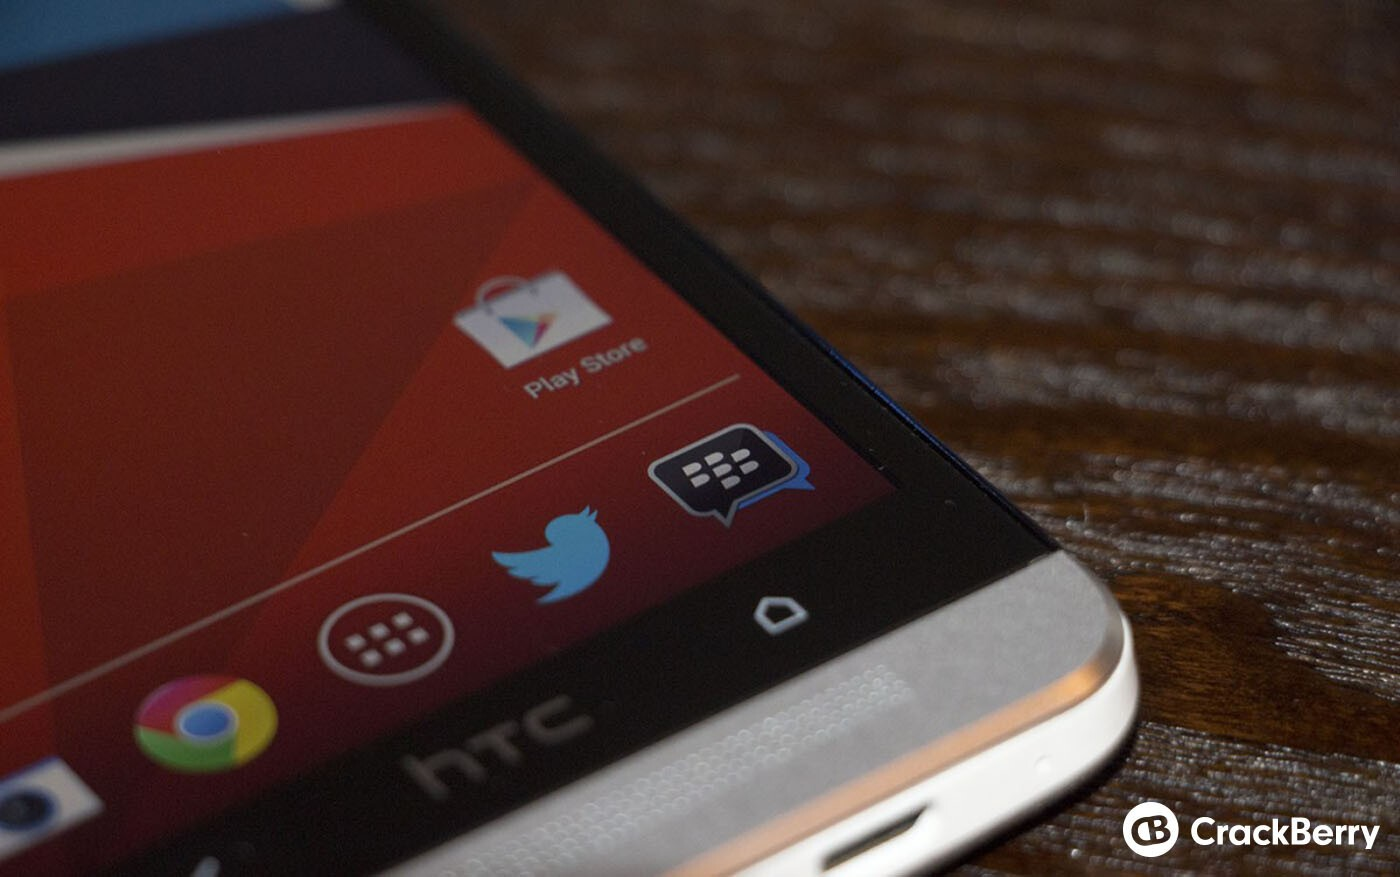 BBM for Android beta testing starts up again, new version available to beta testers